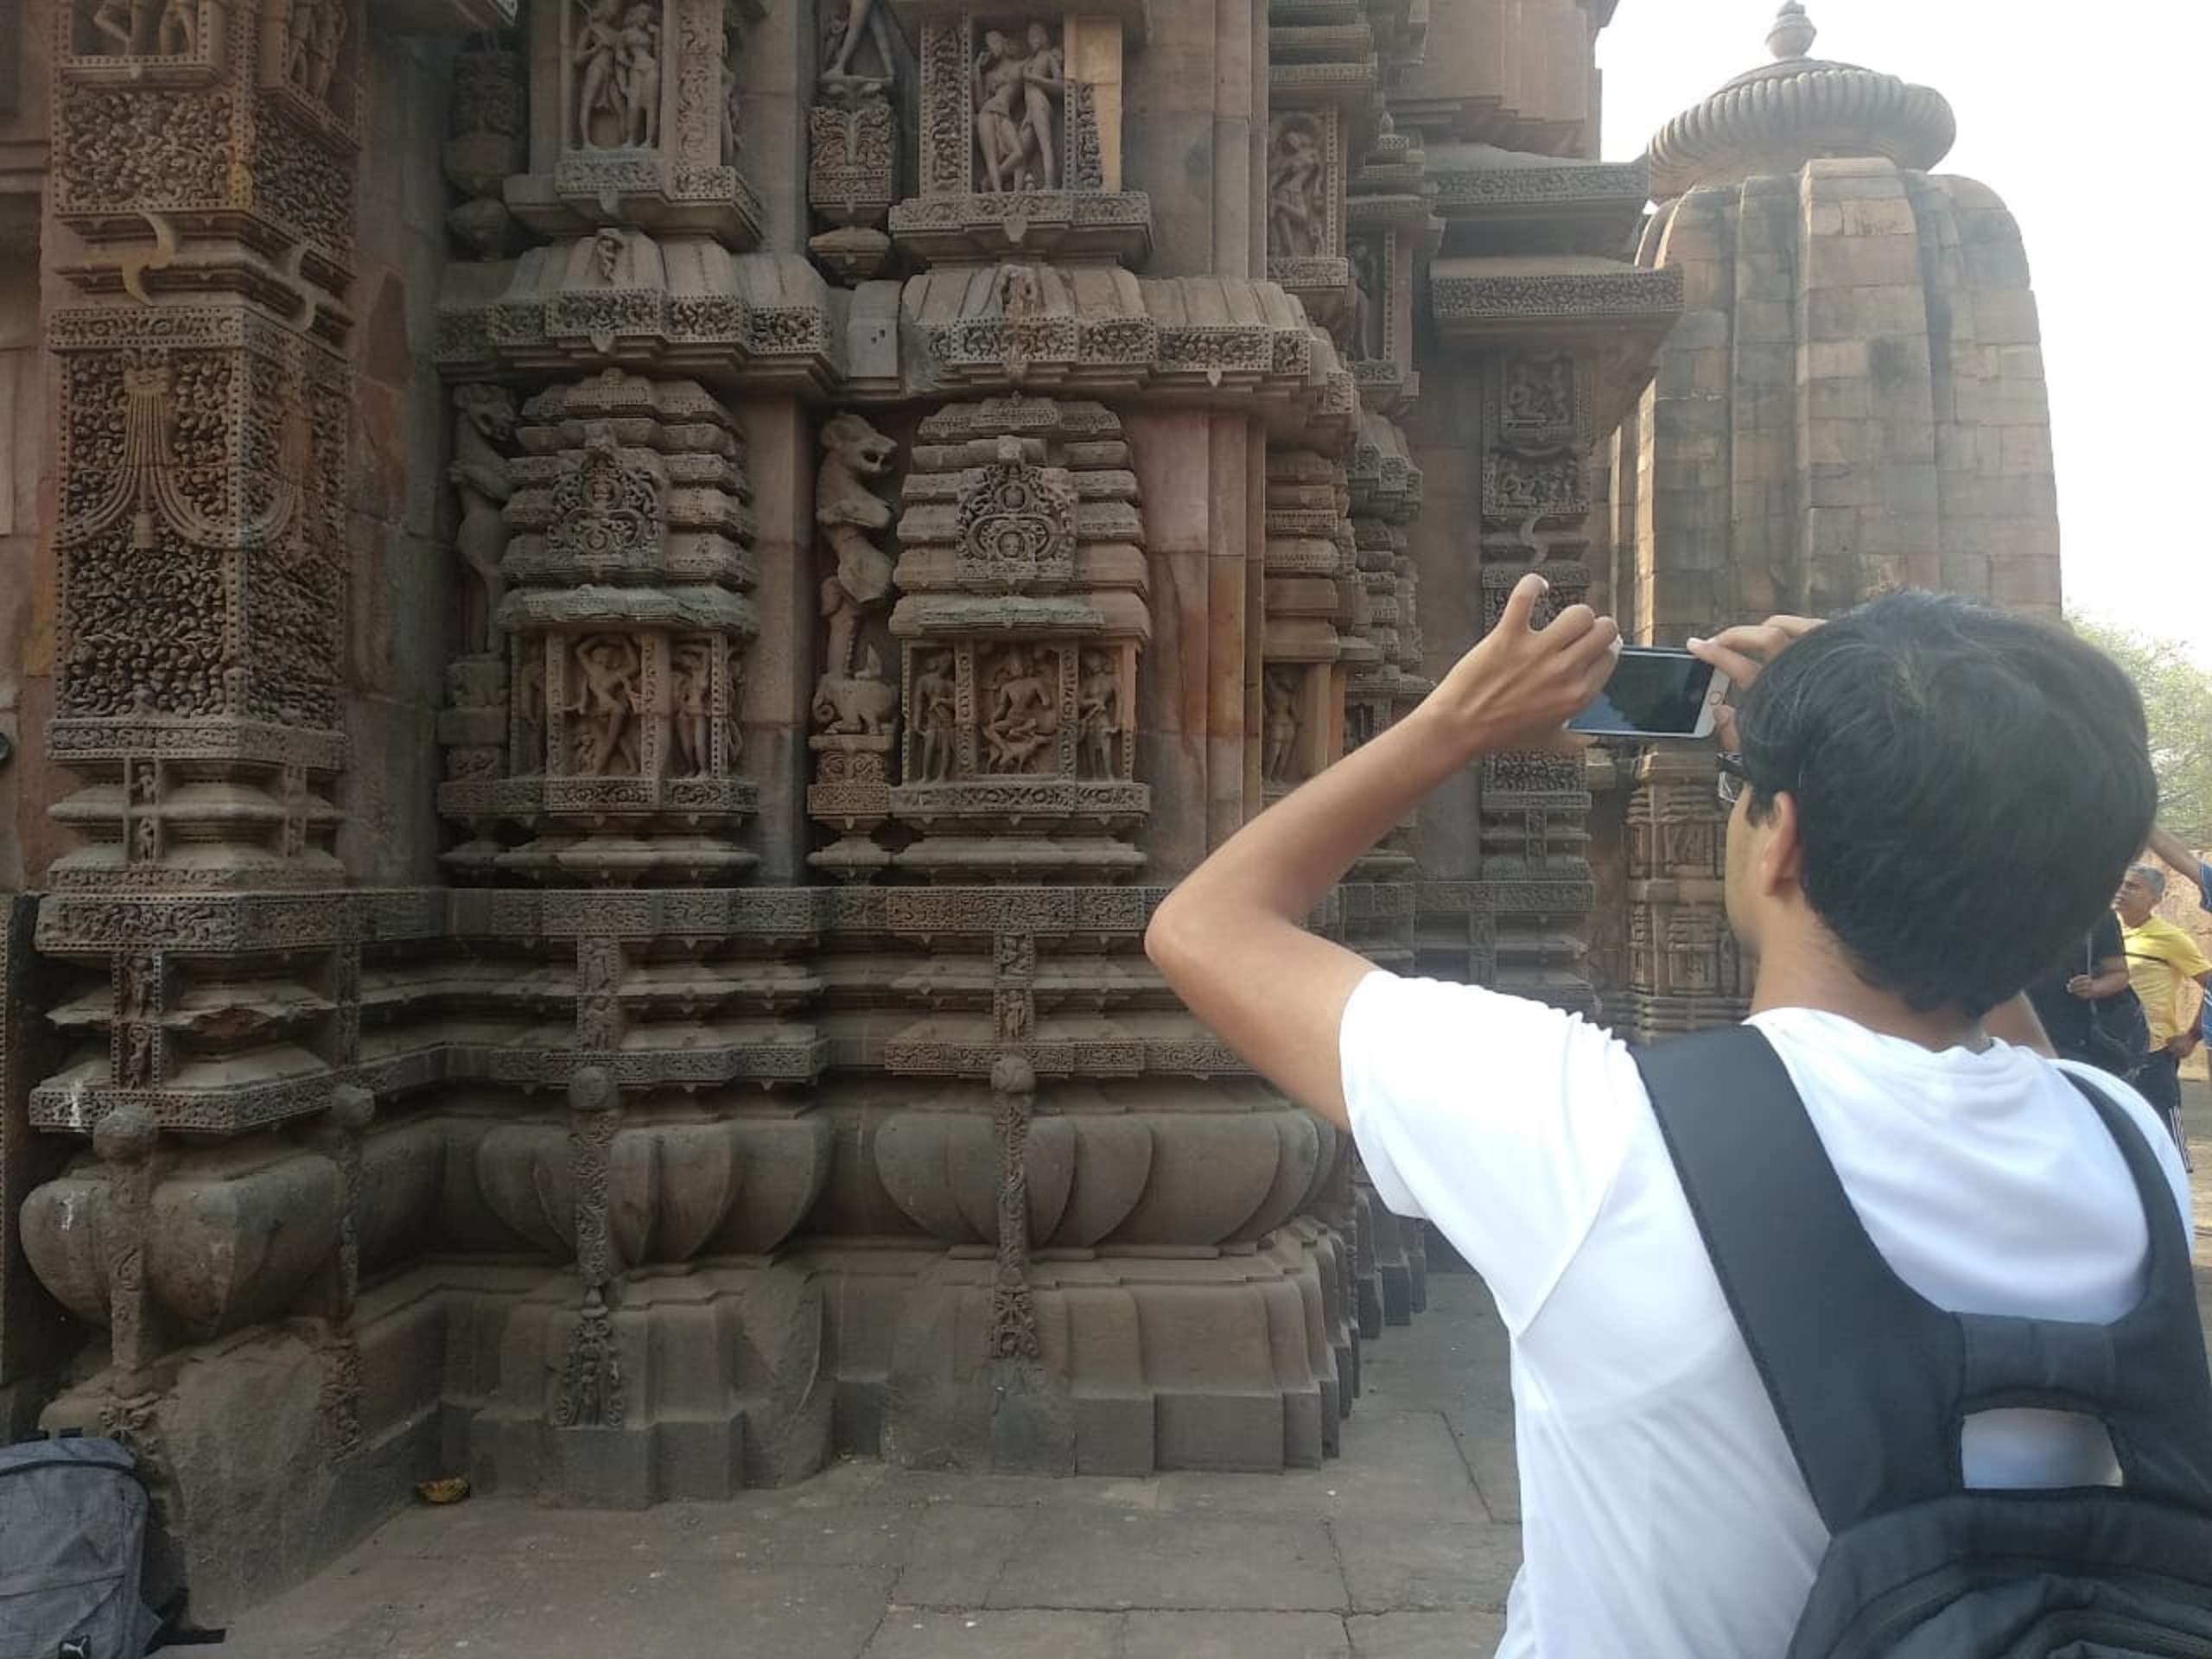 A girl takes pics of the sculptures.